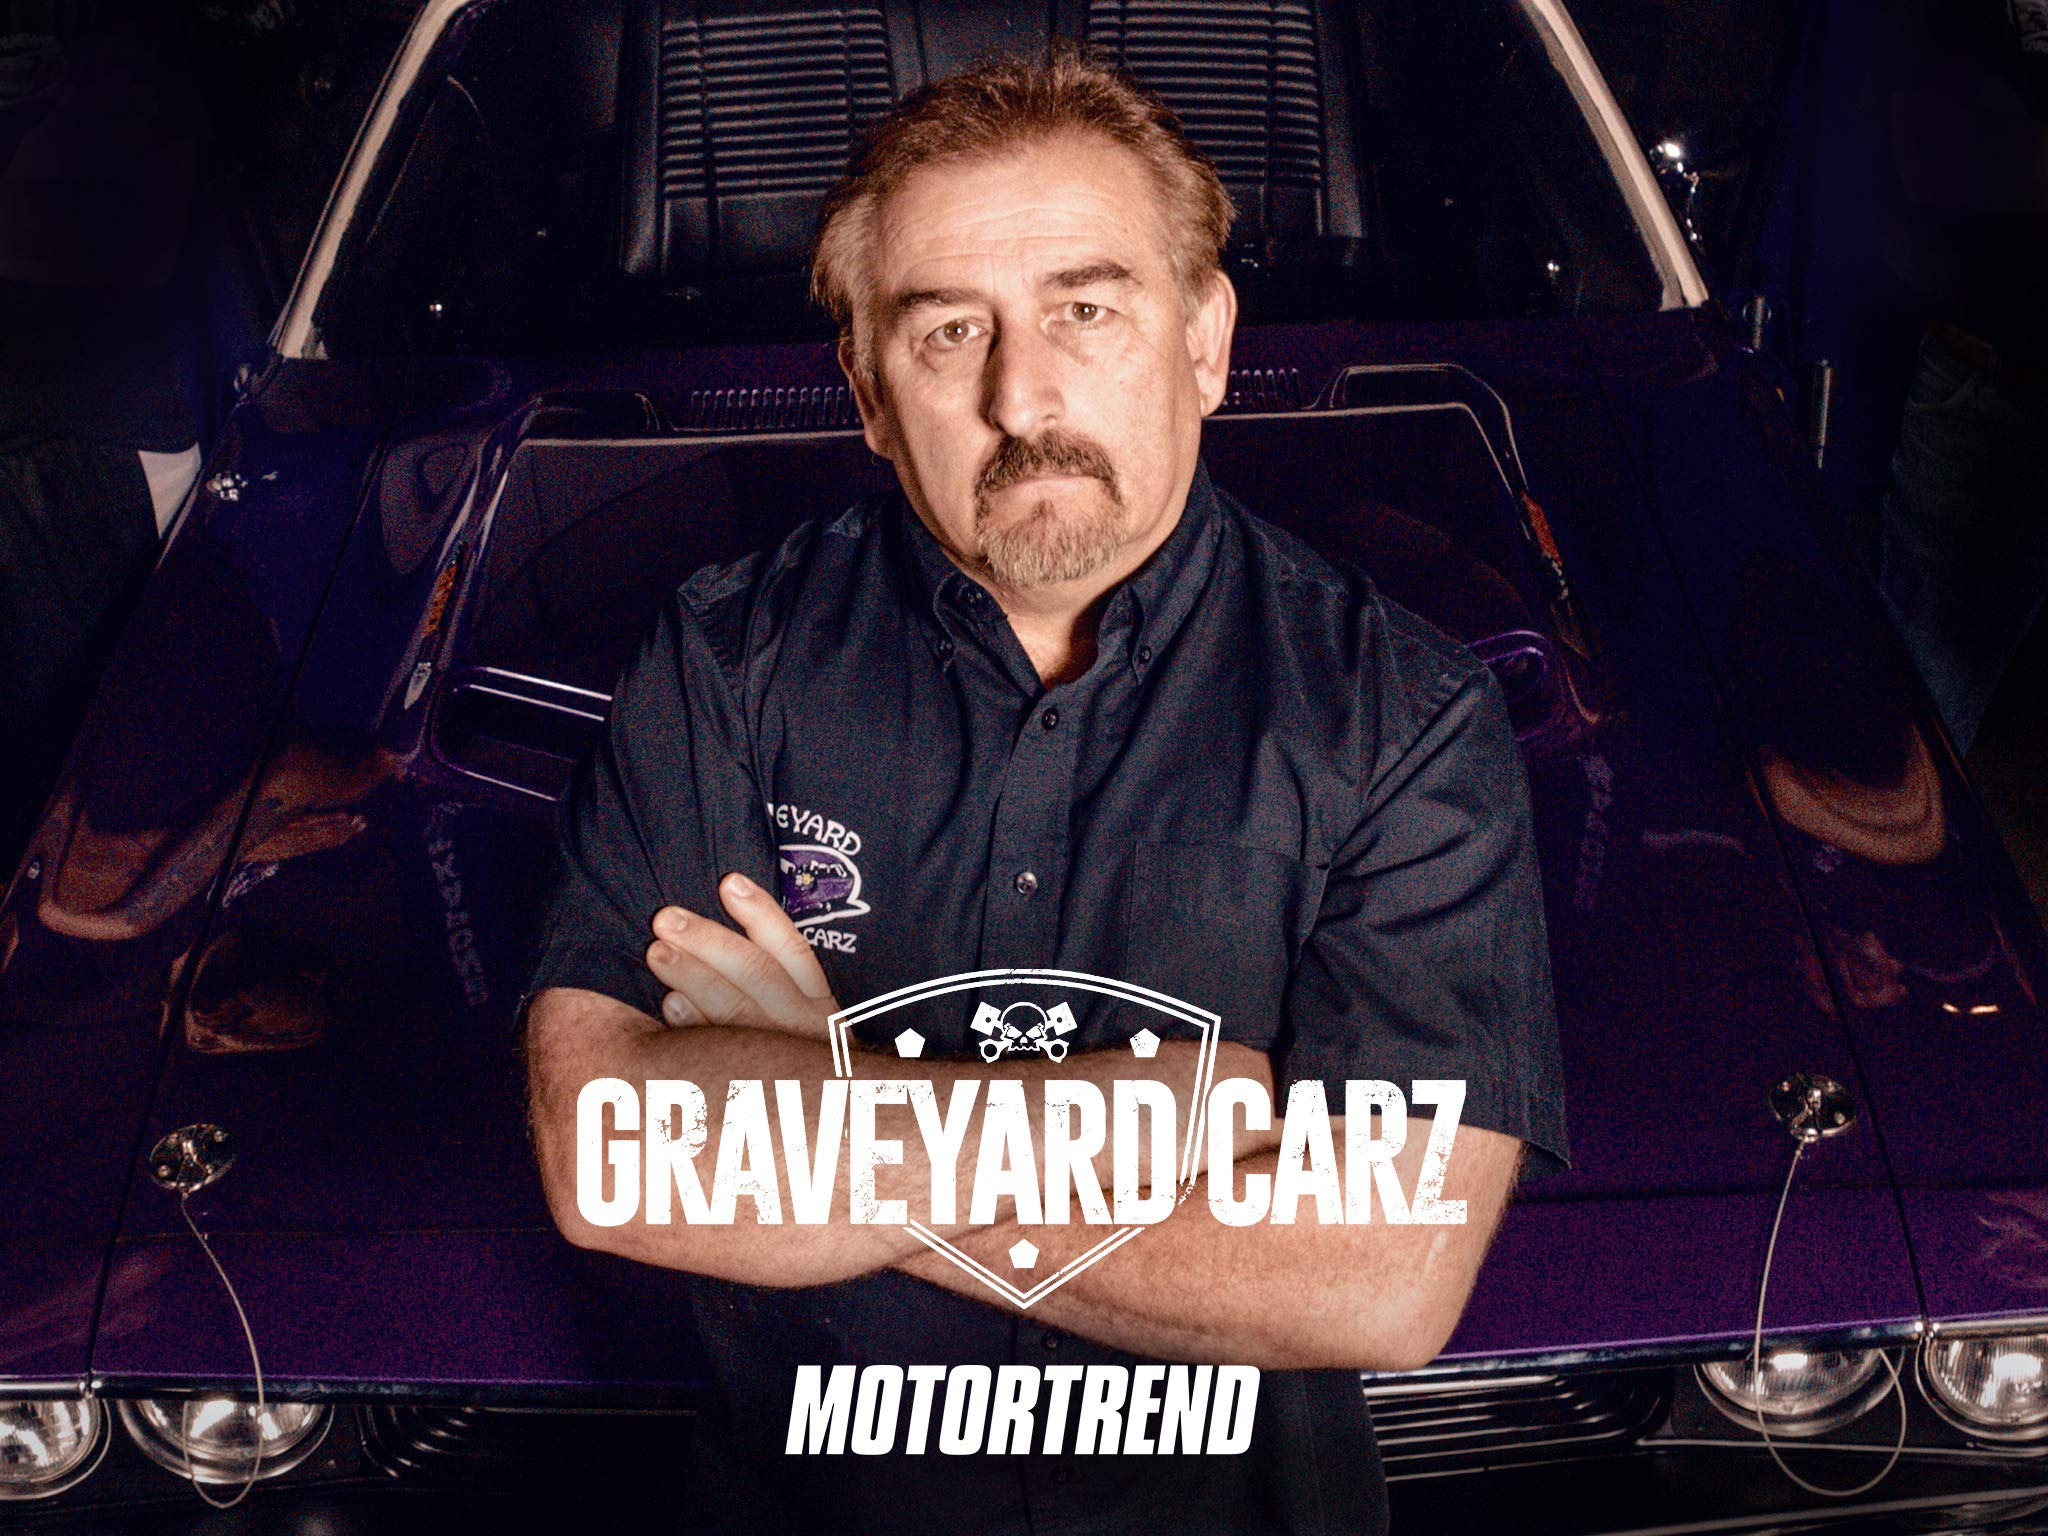 Graveyard Carz gets it done with their #MrDeburr DB600 on MotorTrend TV